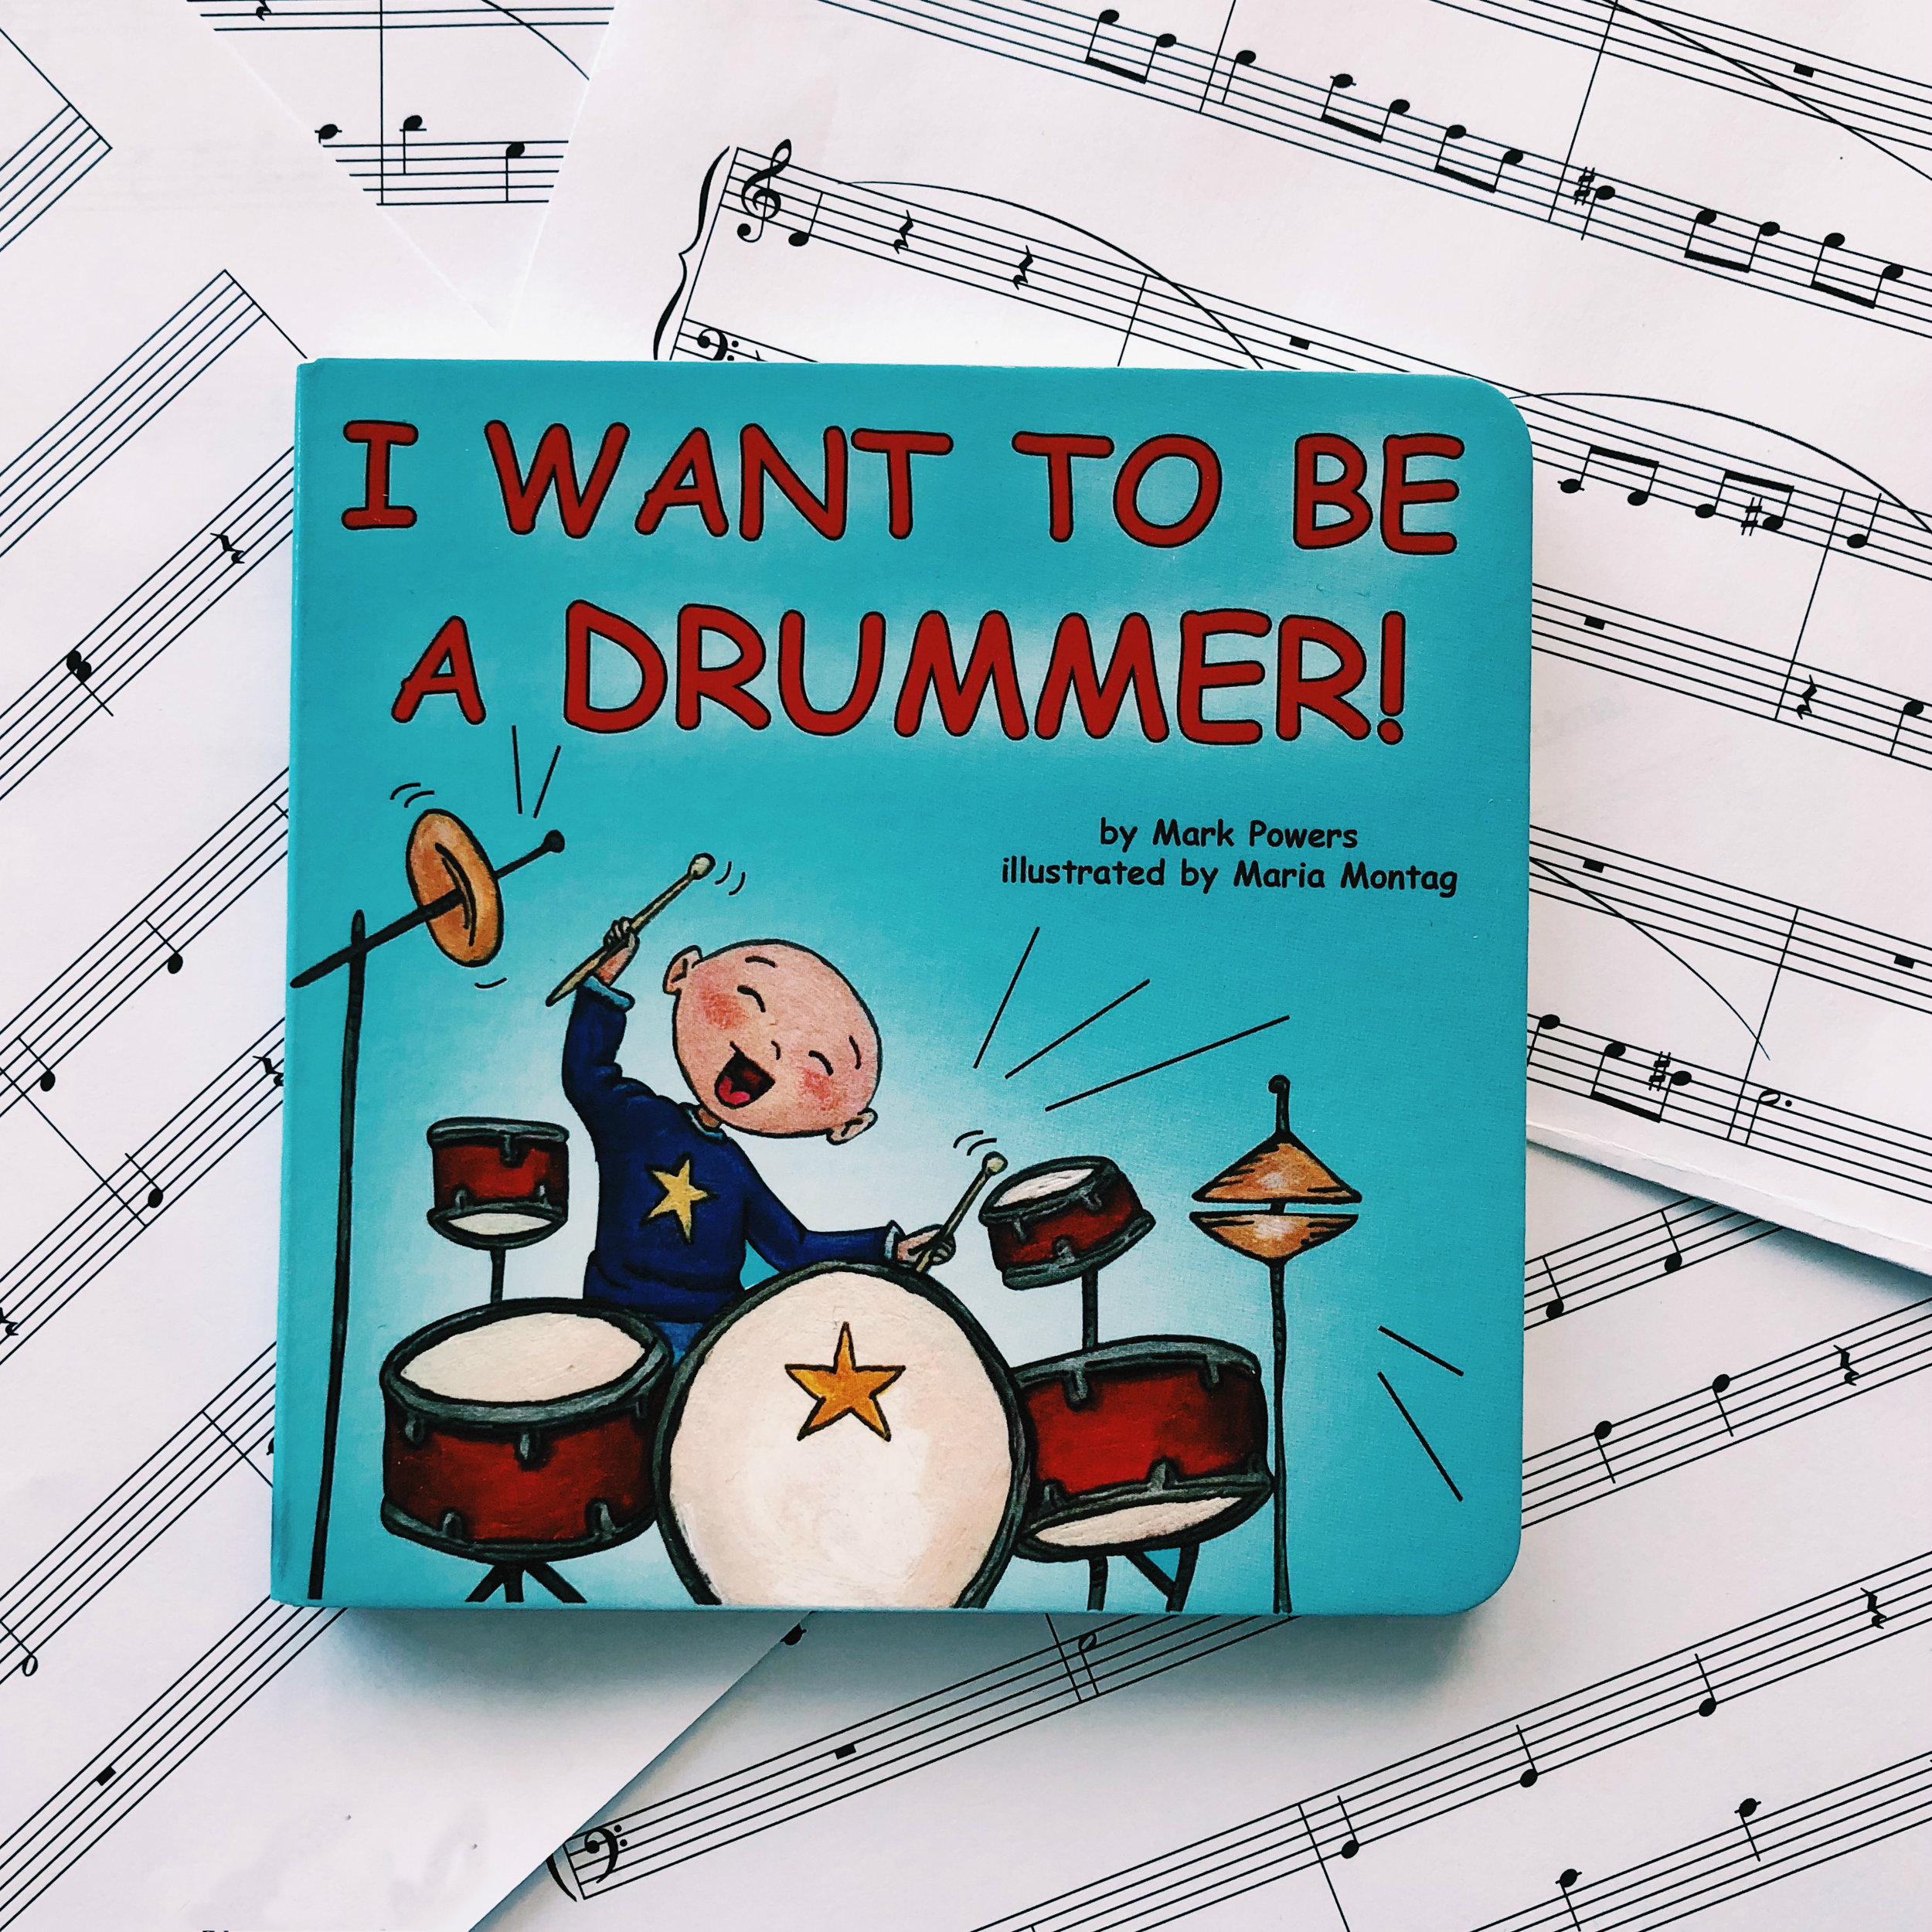 I Want to Be a Drummer!   written by Mark Powers and illustrated by Maria Montag